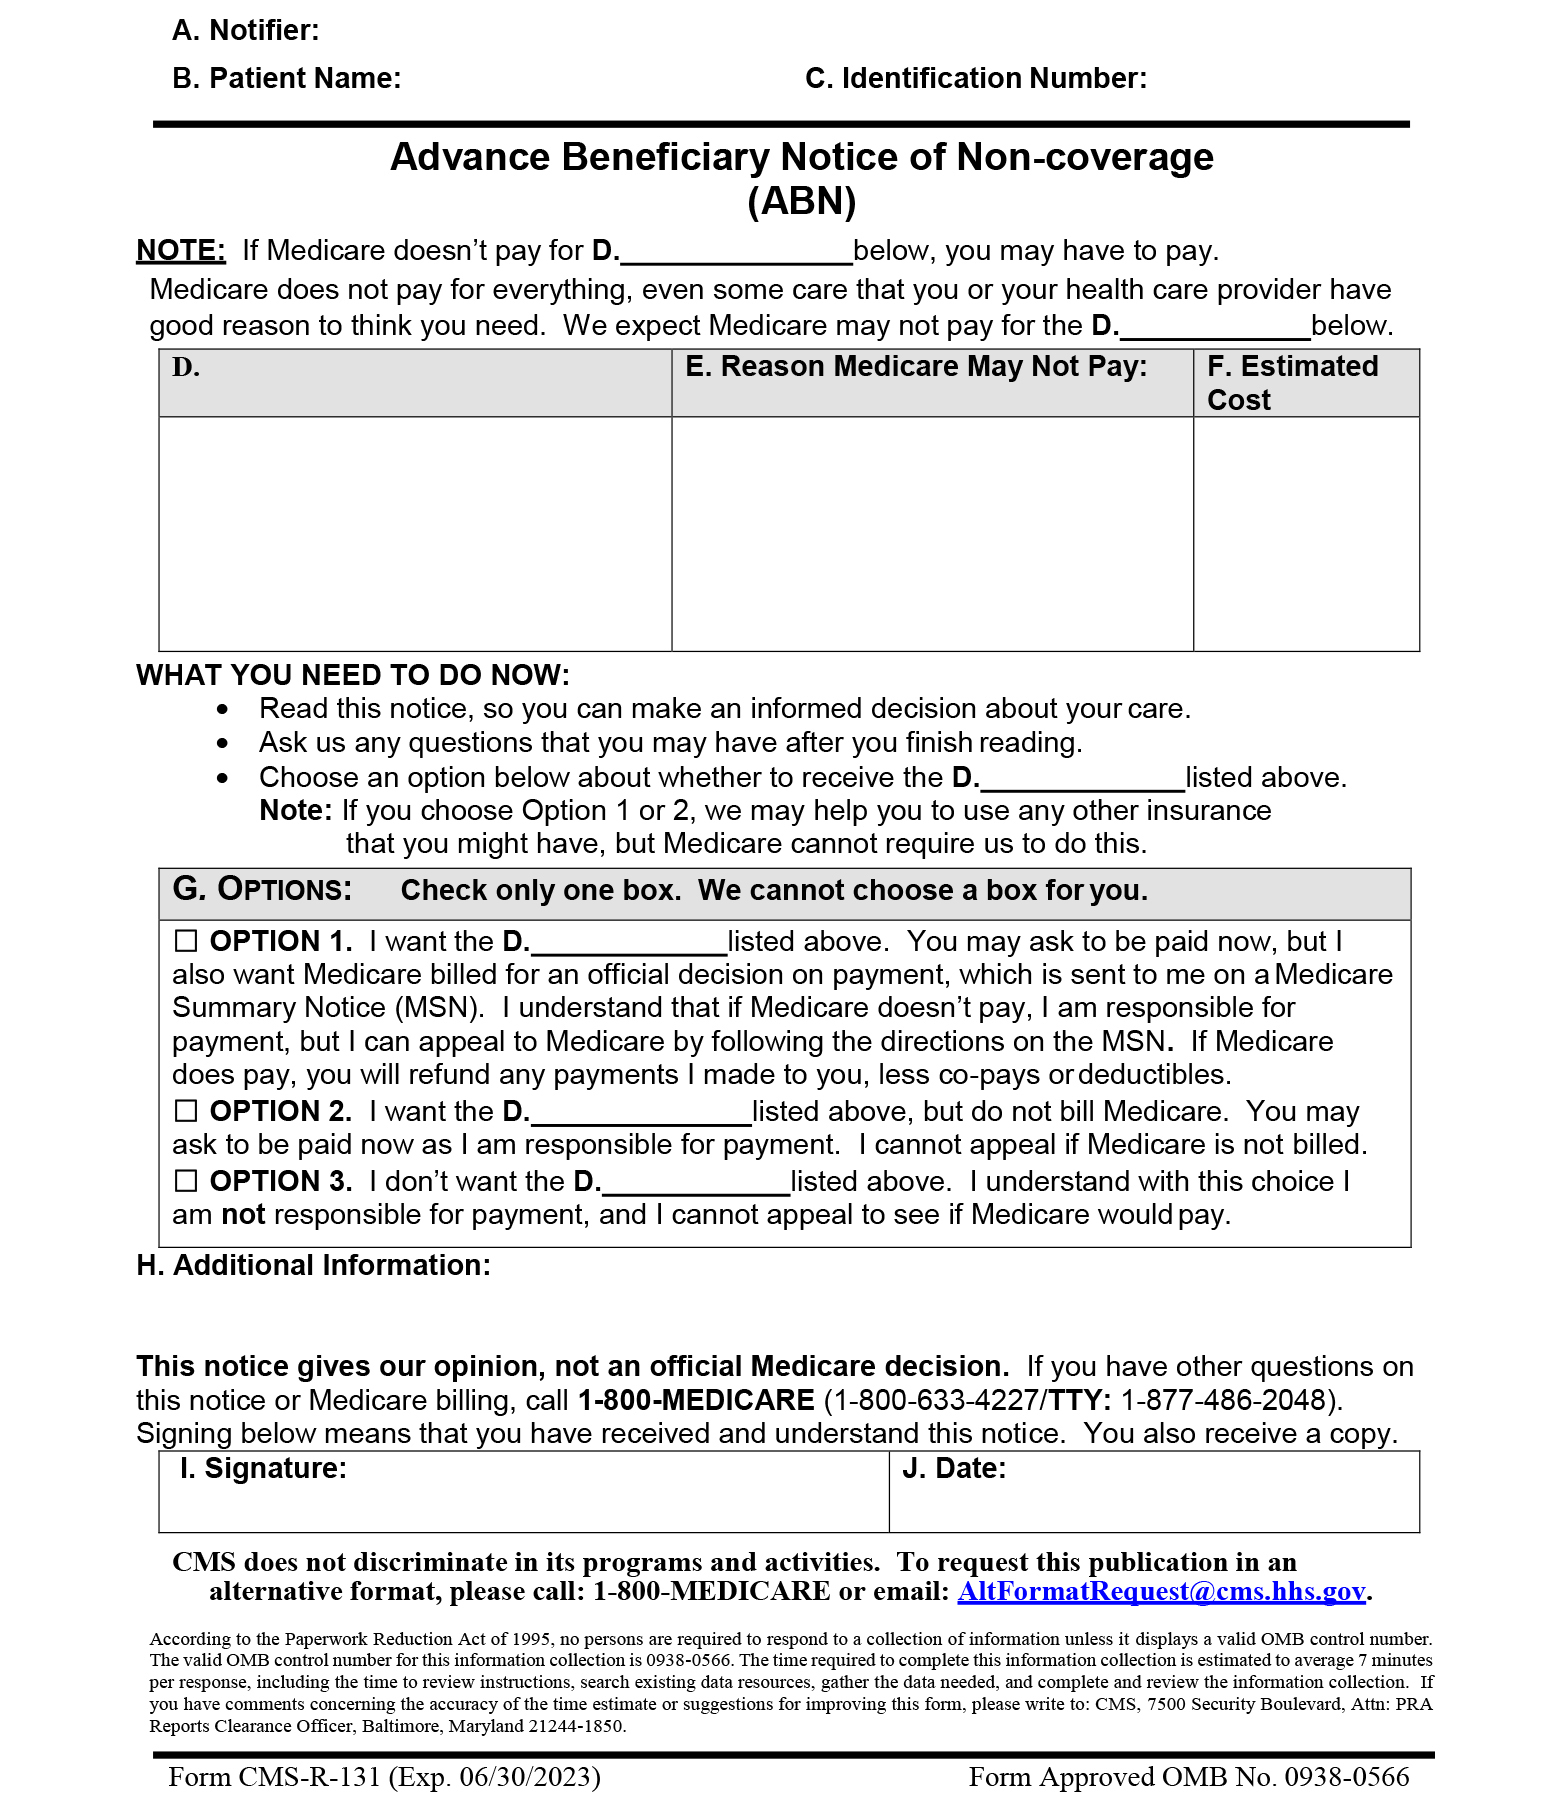 Advance Beneficiary Notice of Noncoverage(ABN) | Form CMS-R-131 ...